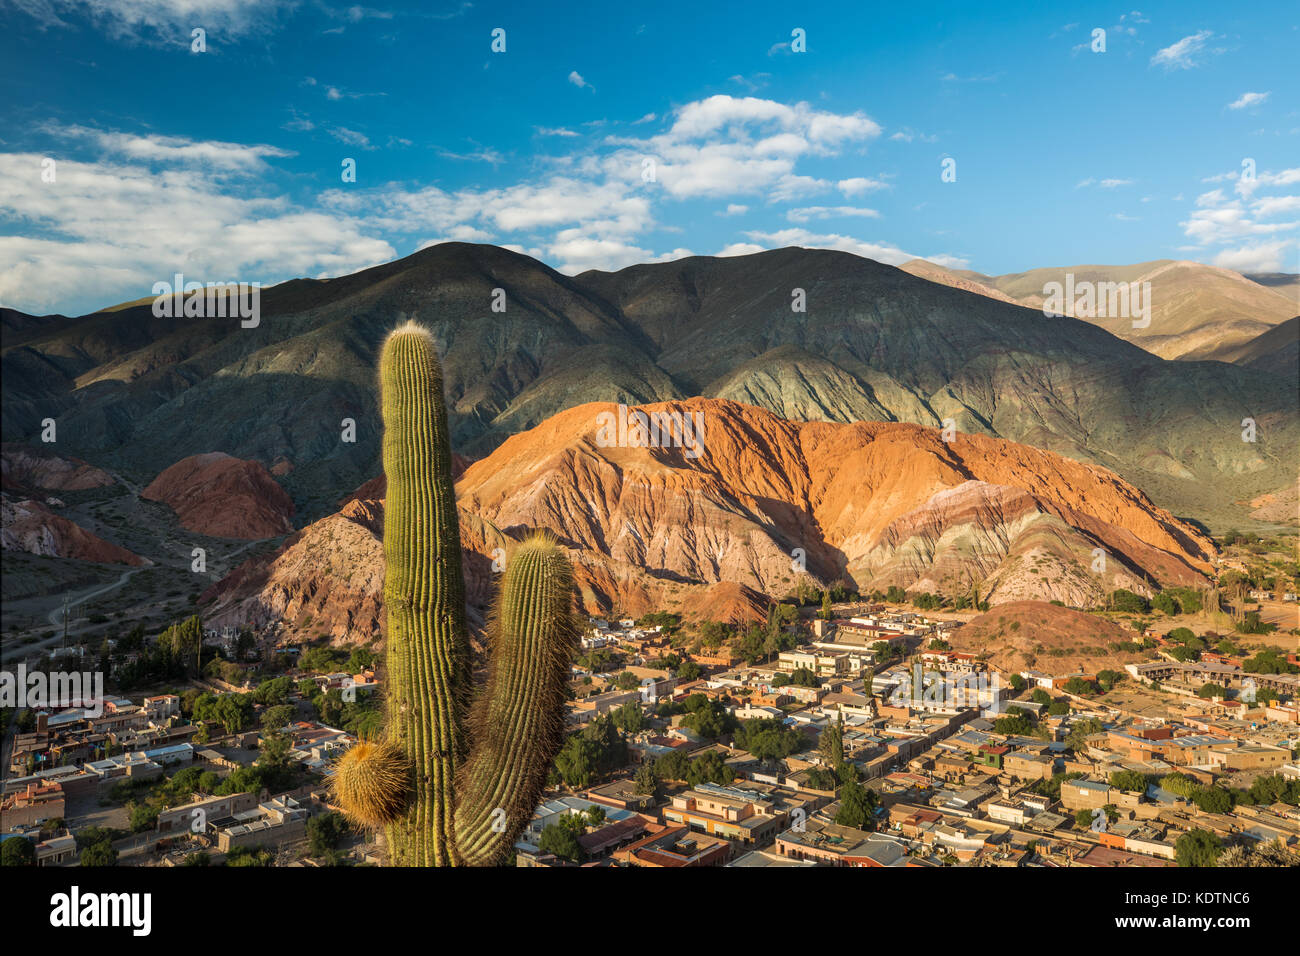 Le Cerro de siete colores (la colline des sept couleurs) à purmamarca, quebrada de humahuacha, province de Photo Stock